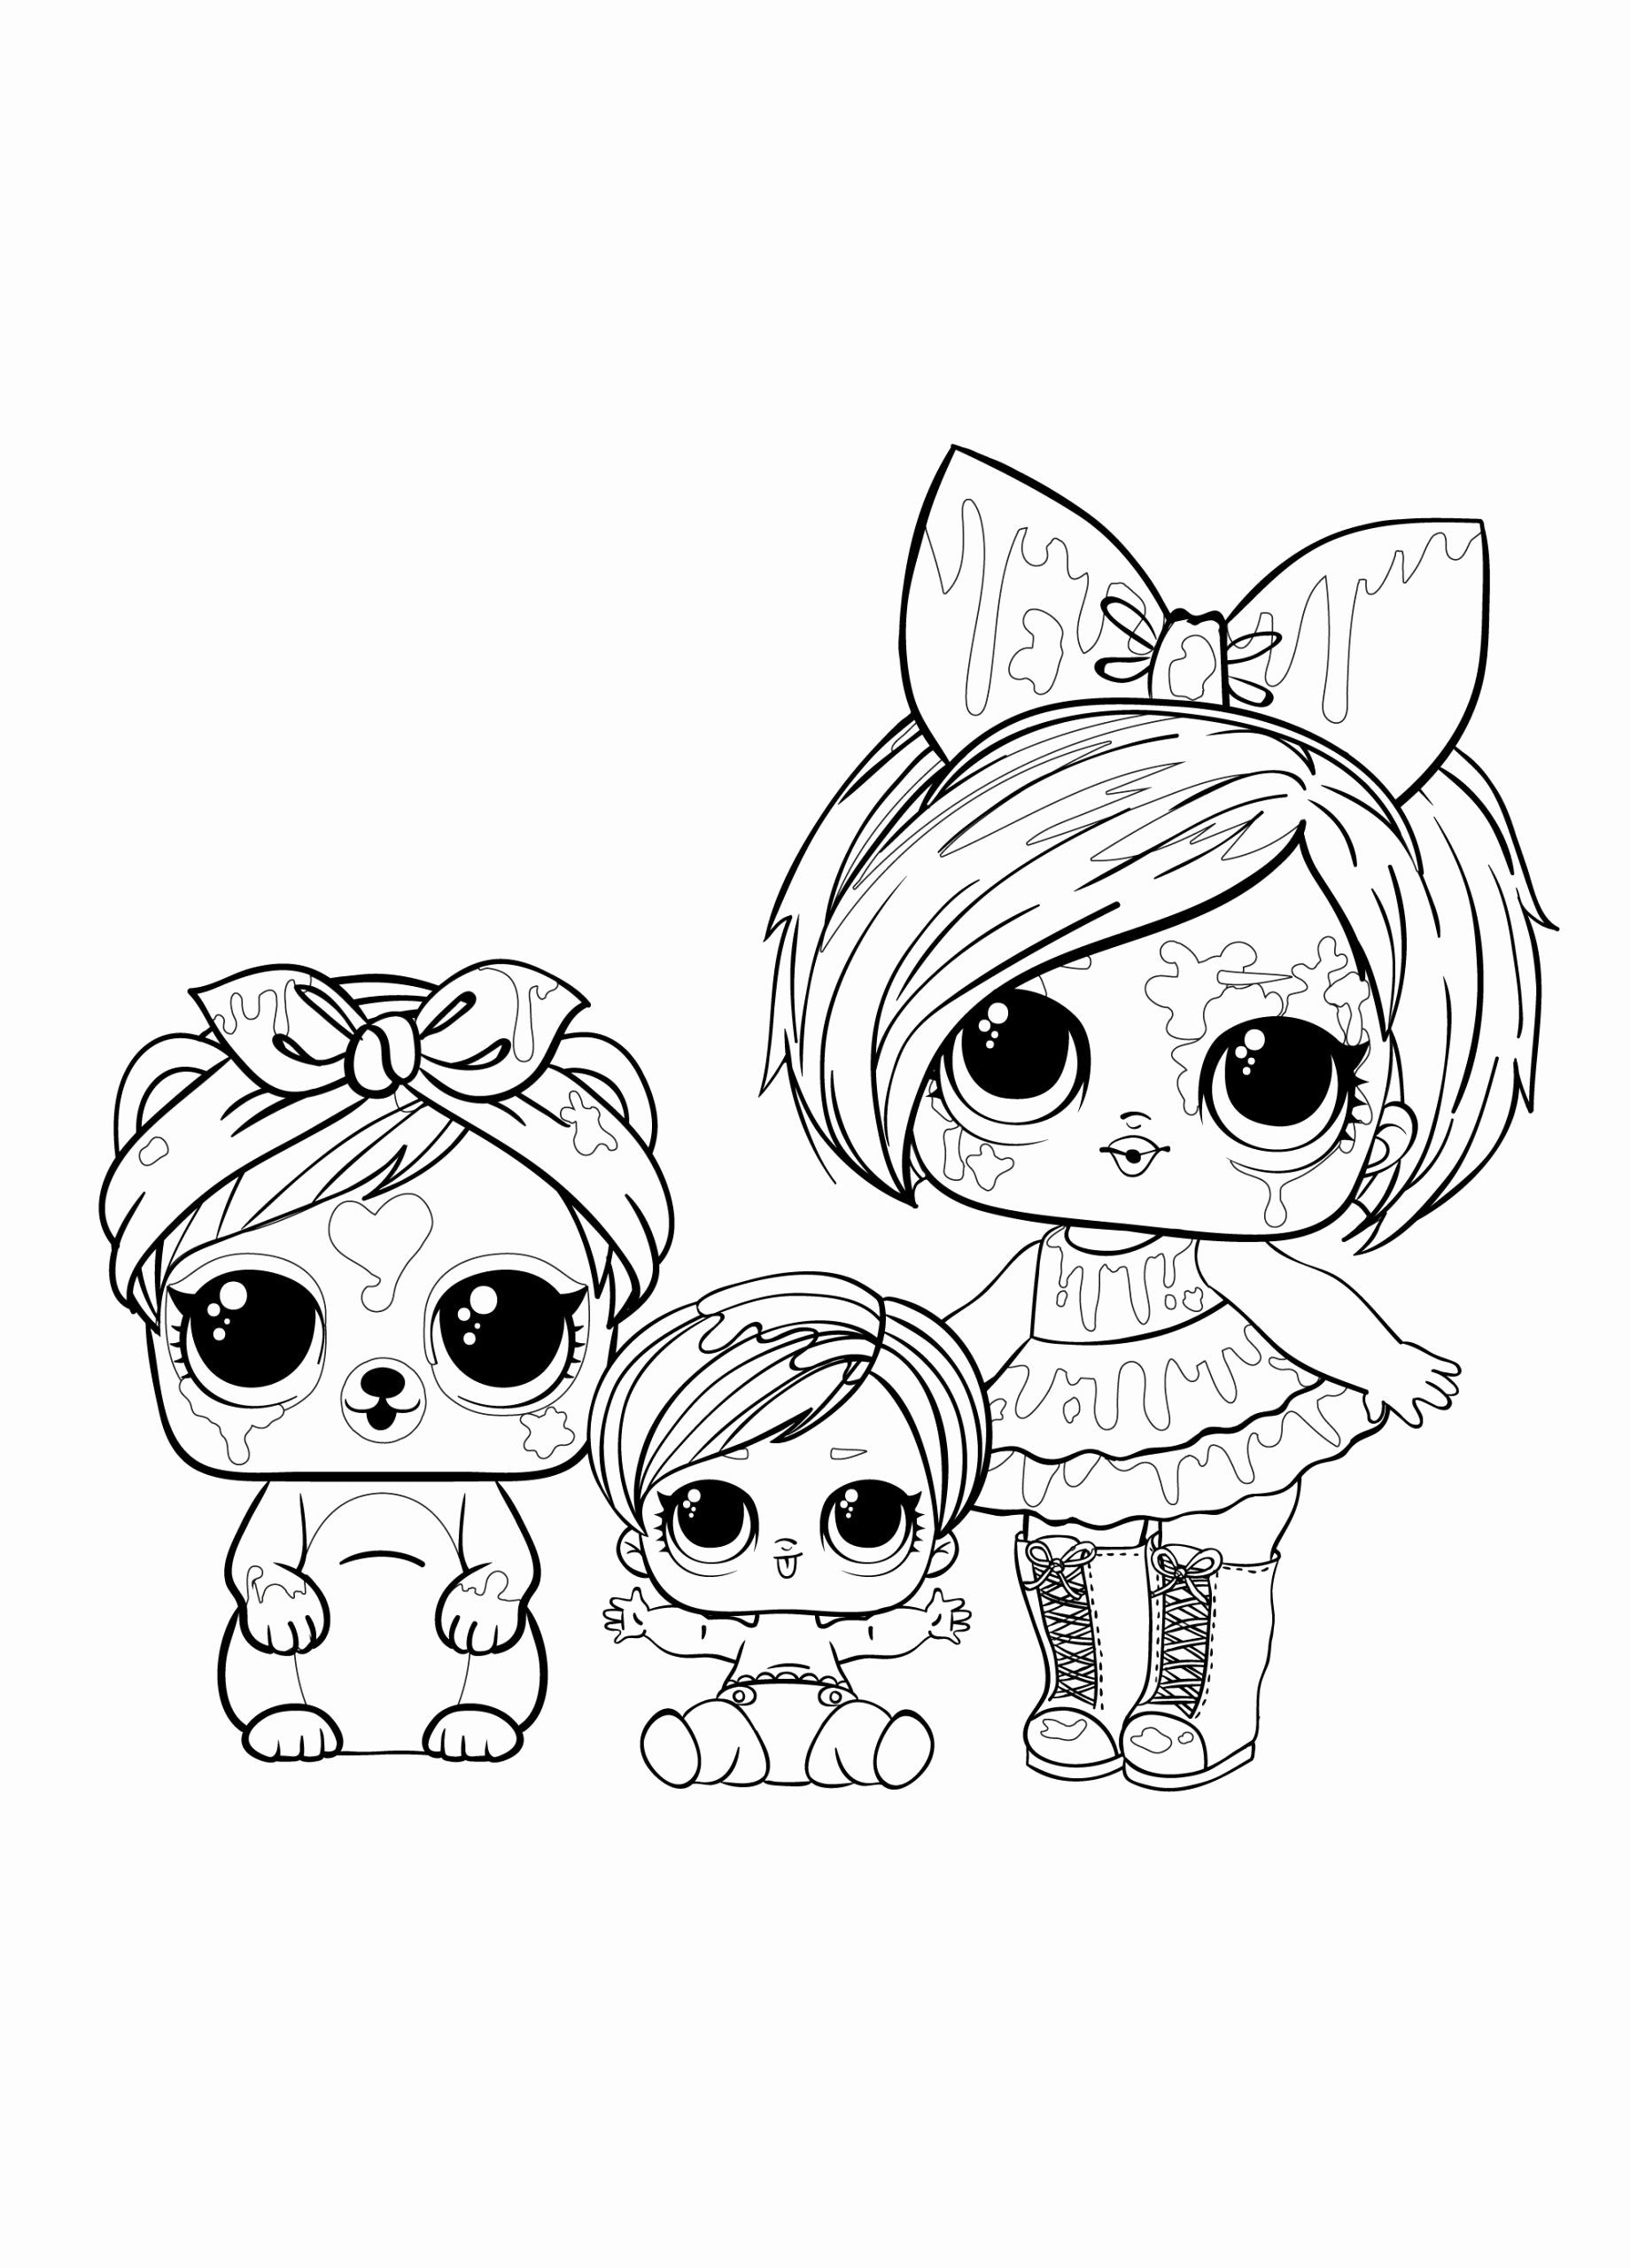 Halloween Coloring Sheets For Toddlers Fresh Coloring Pages Coloring Ideas Lol Printable T In 2020 Mermaid Coloring Pages Halloween Coloring Sheets Cool Coloring Pages